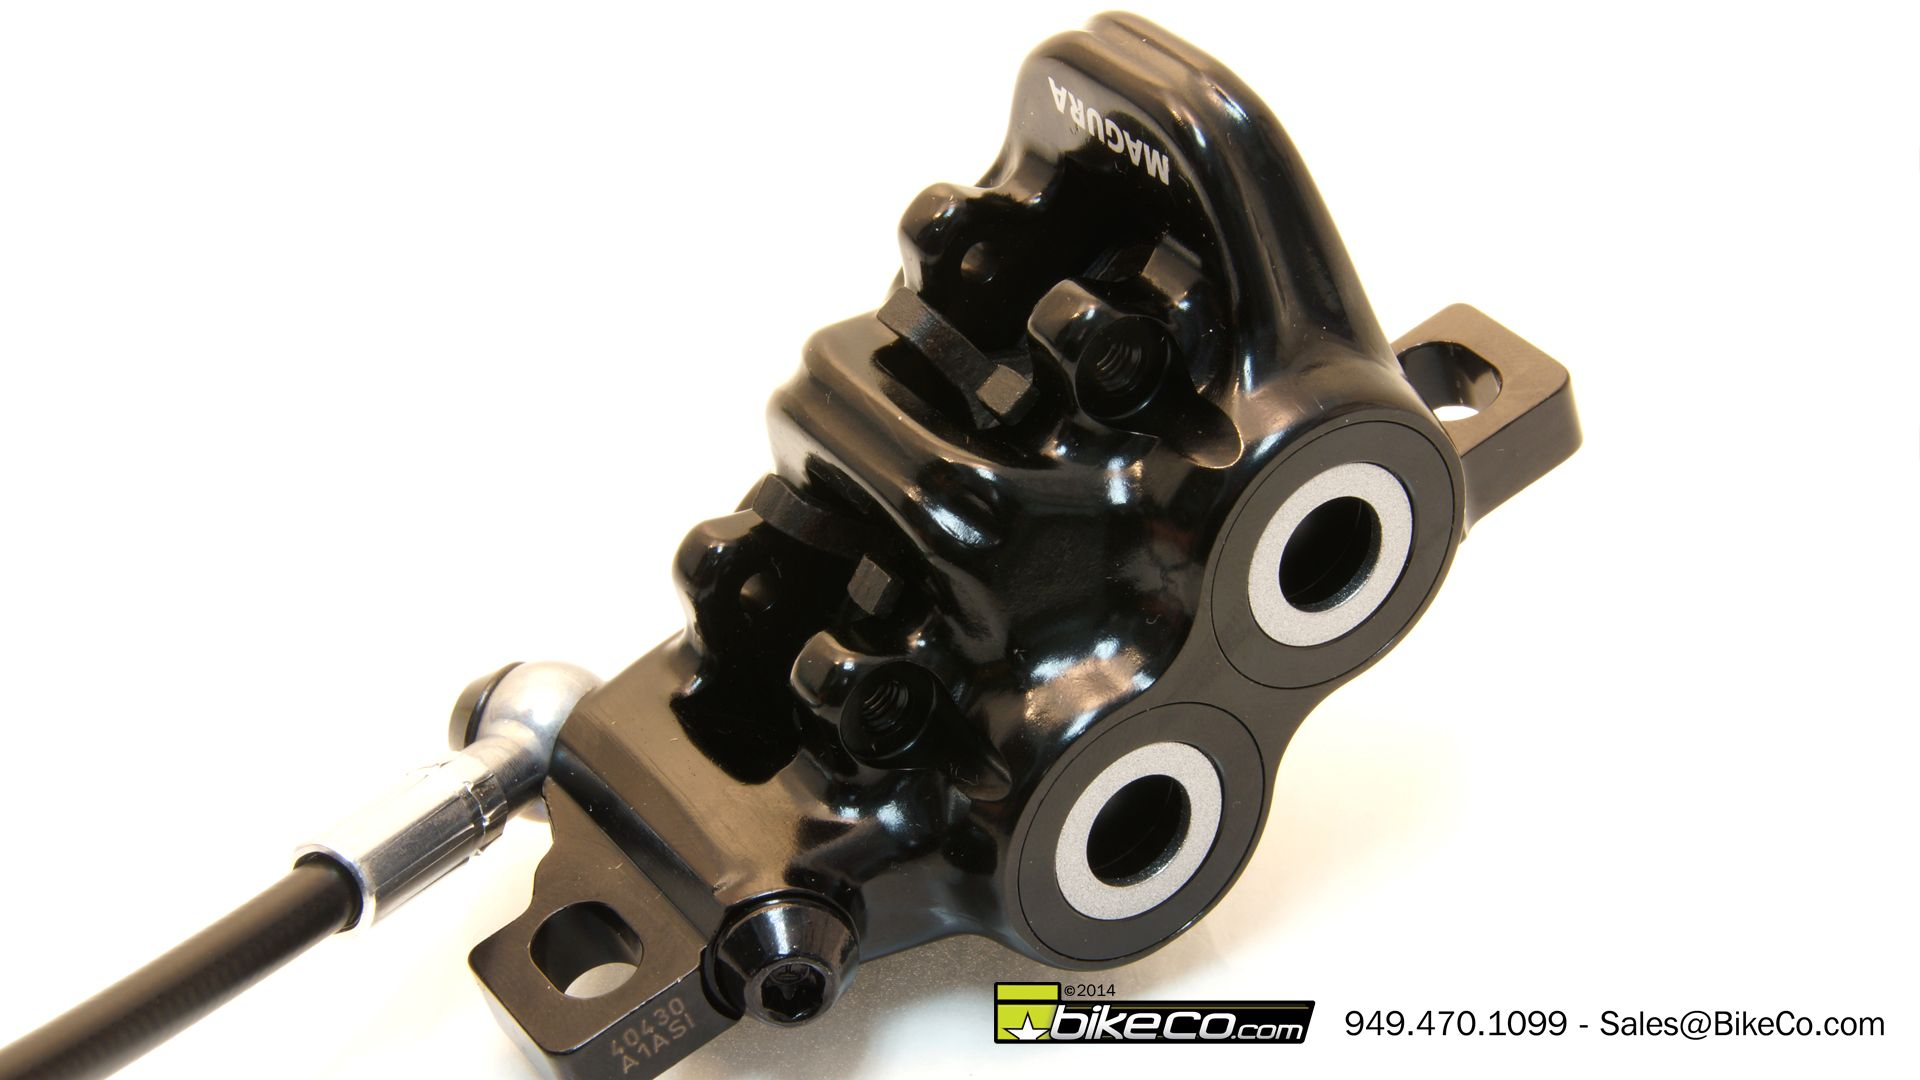 Magura 4 Piston Mt 5 And Mt 7 Brake Systems Available At Bikeco